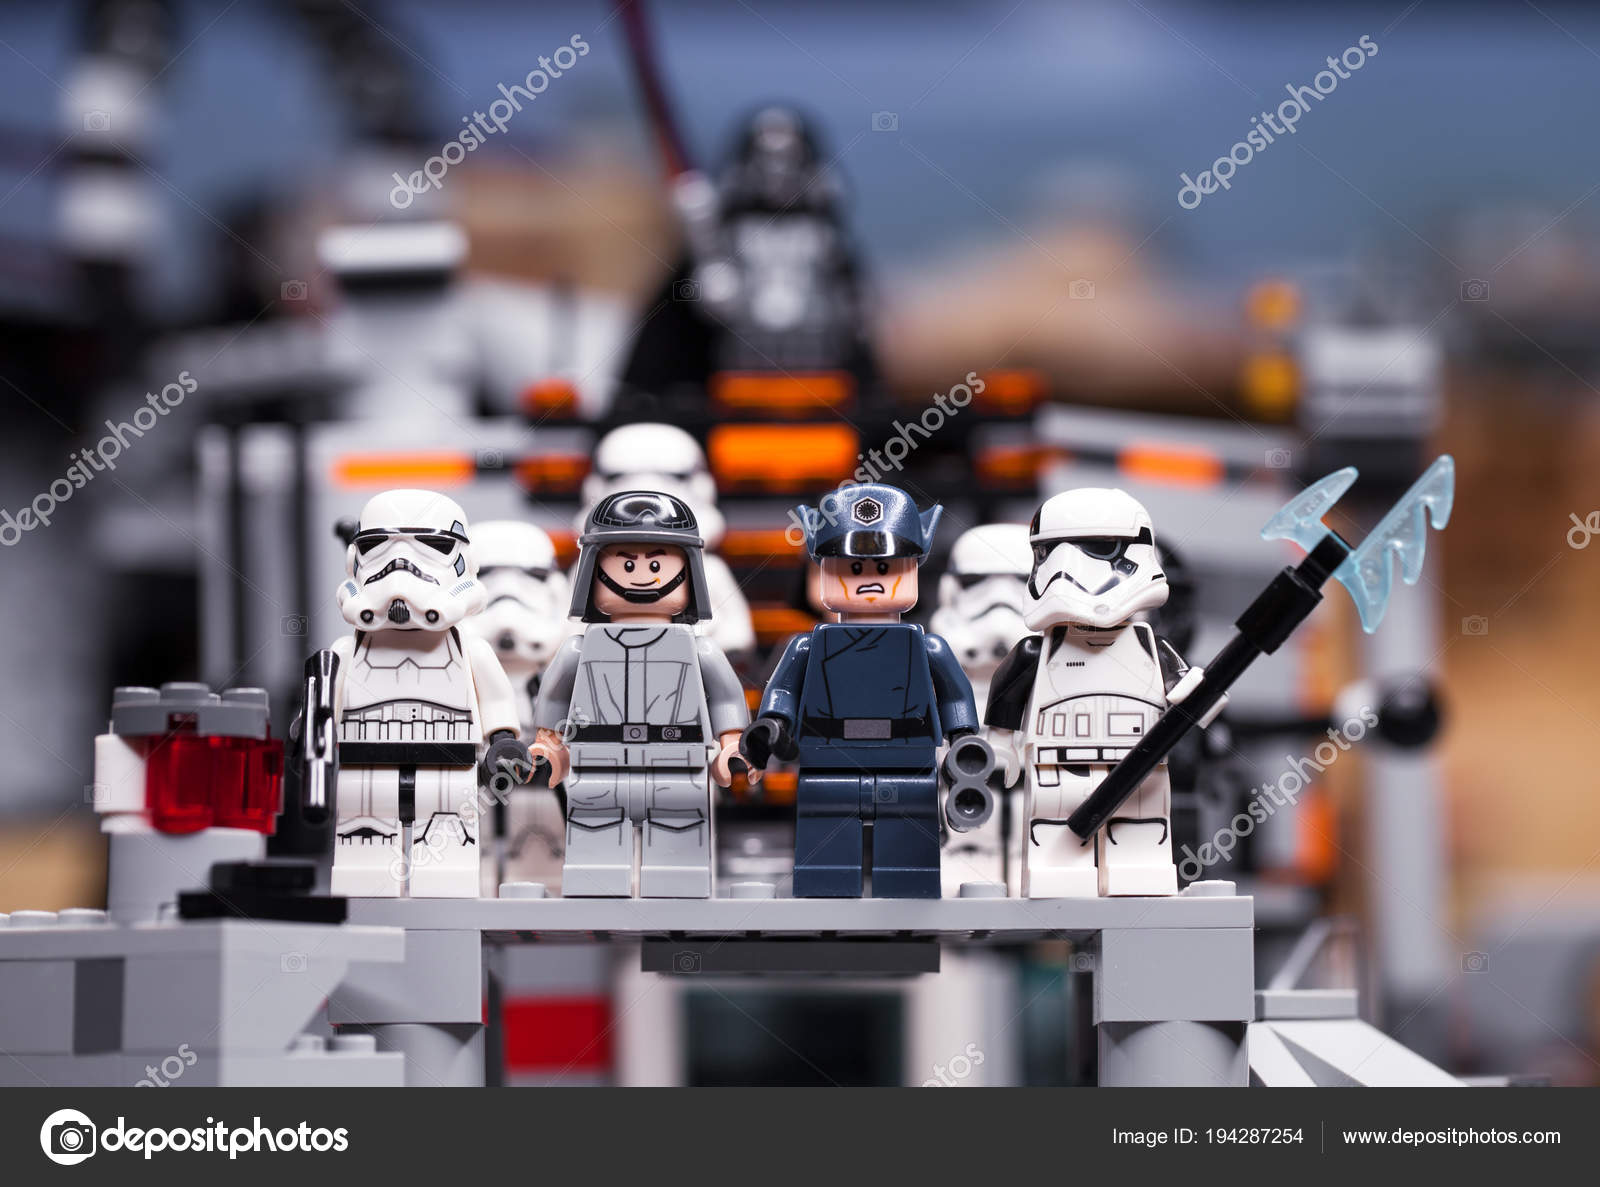 RUSSIA, April 12, 2018  Constructor Lego Star Wars  Episode